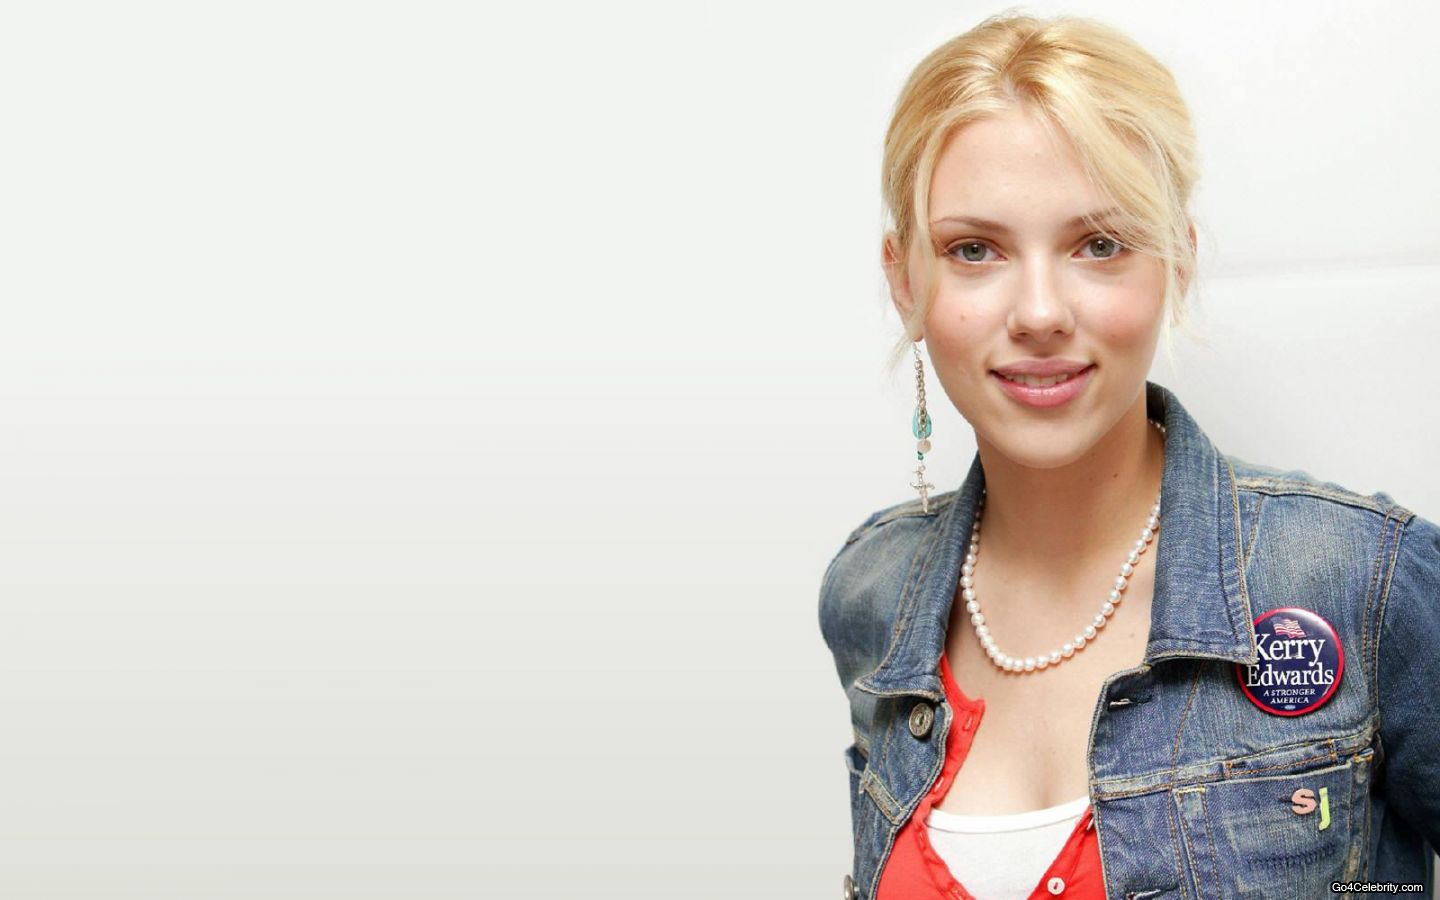 Scarlett Johansson Wallpaper: Scarlett Johansson Wallpaper Pack 4